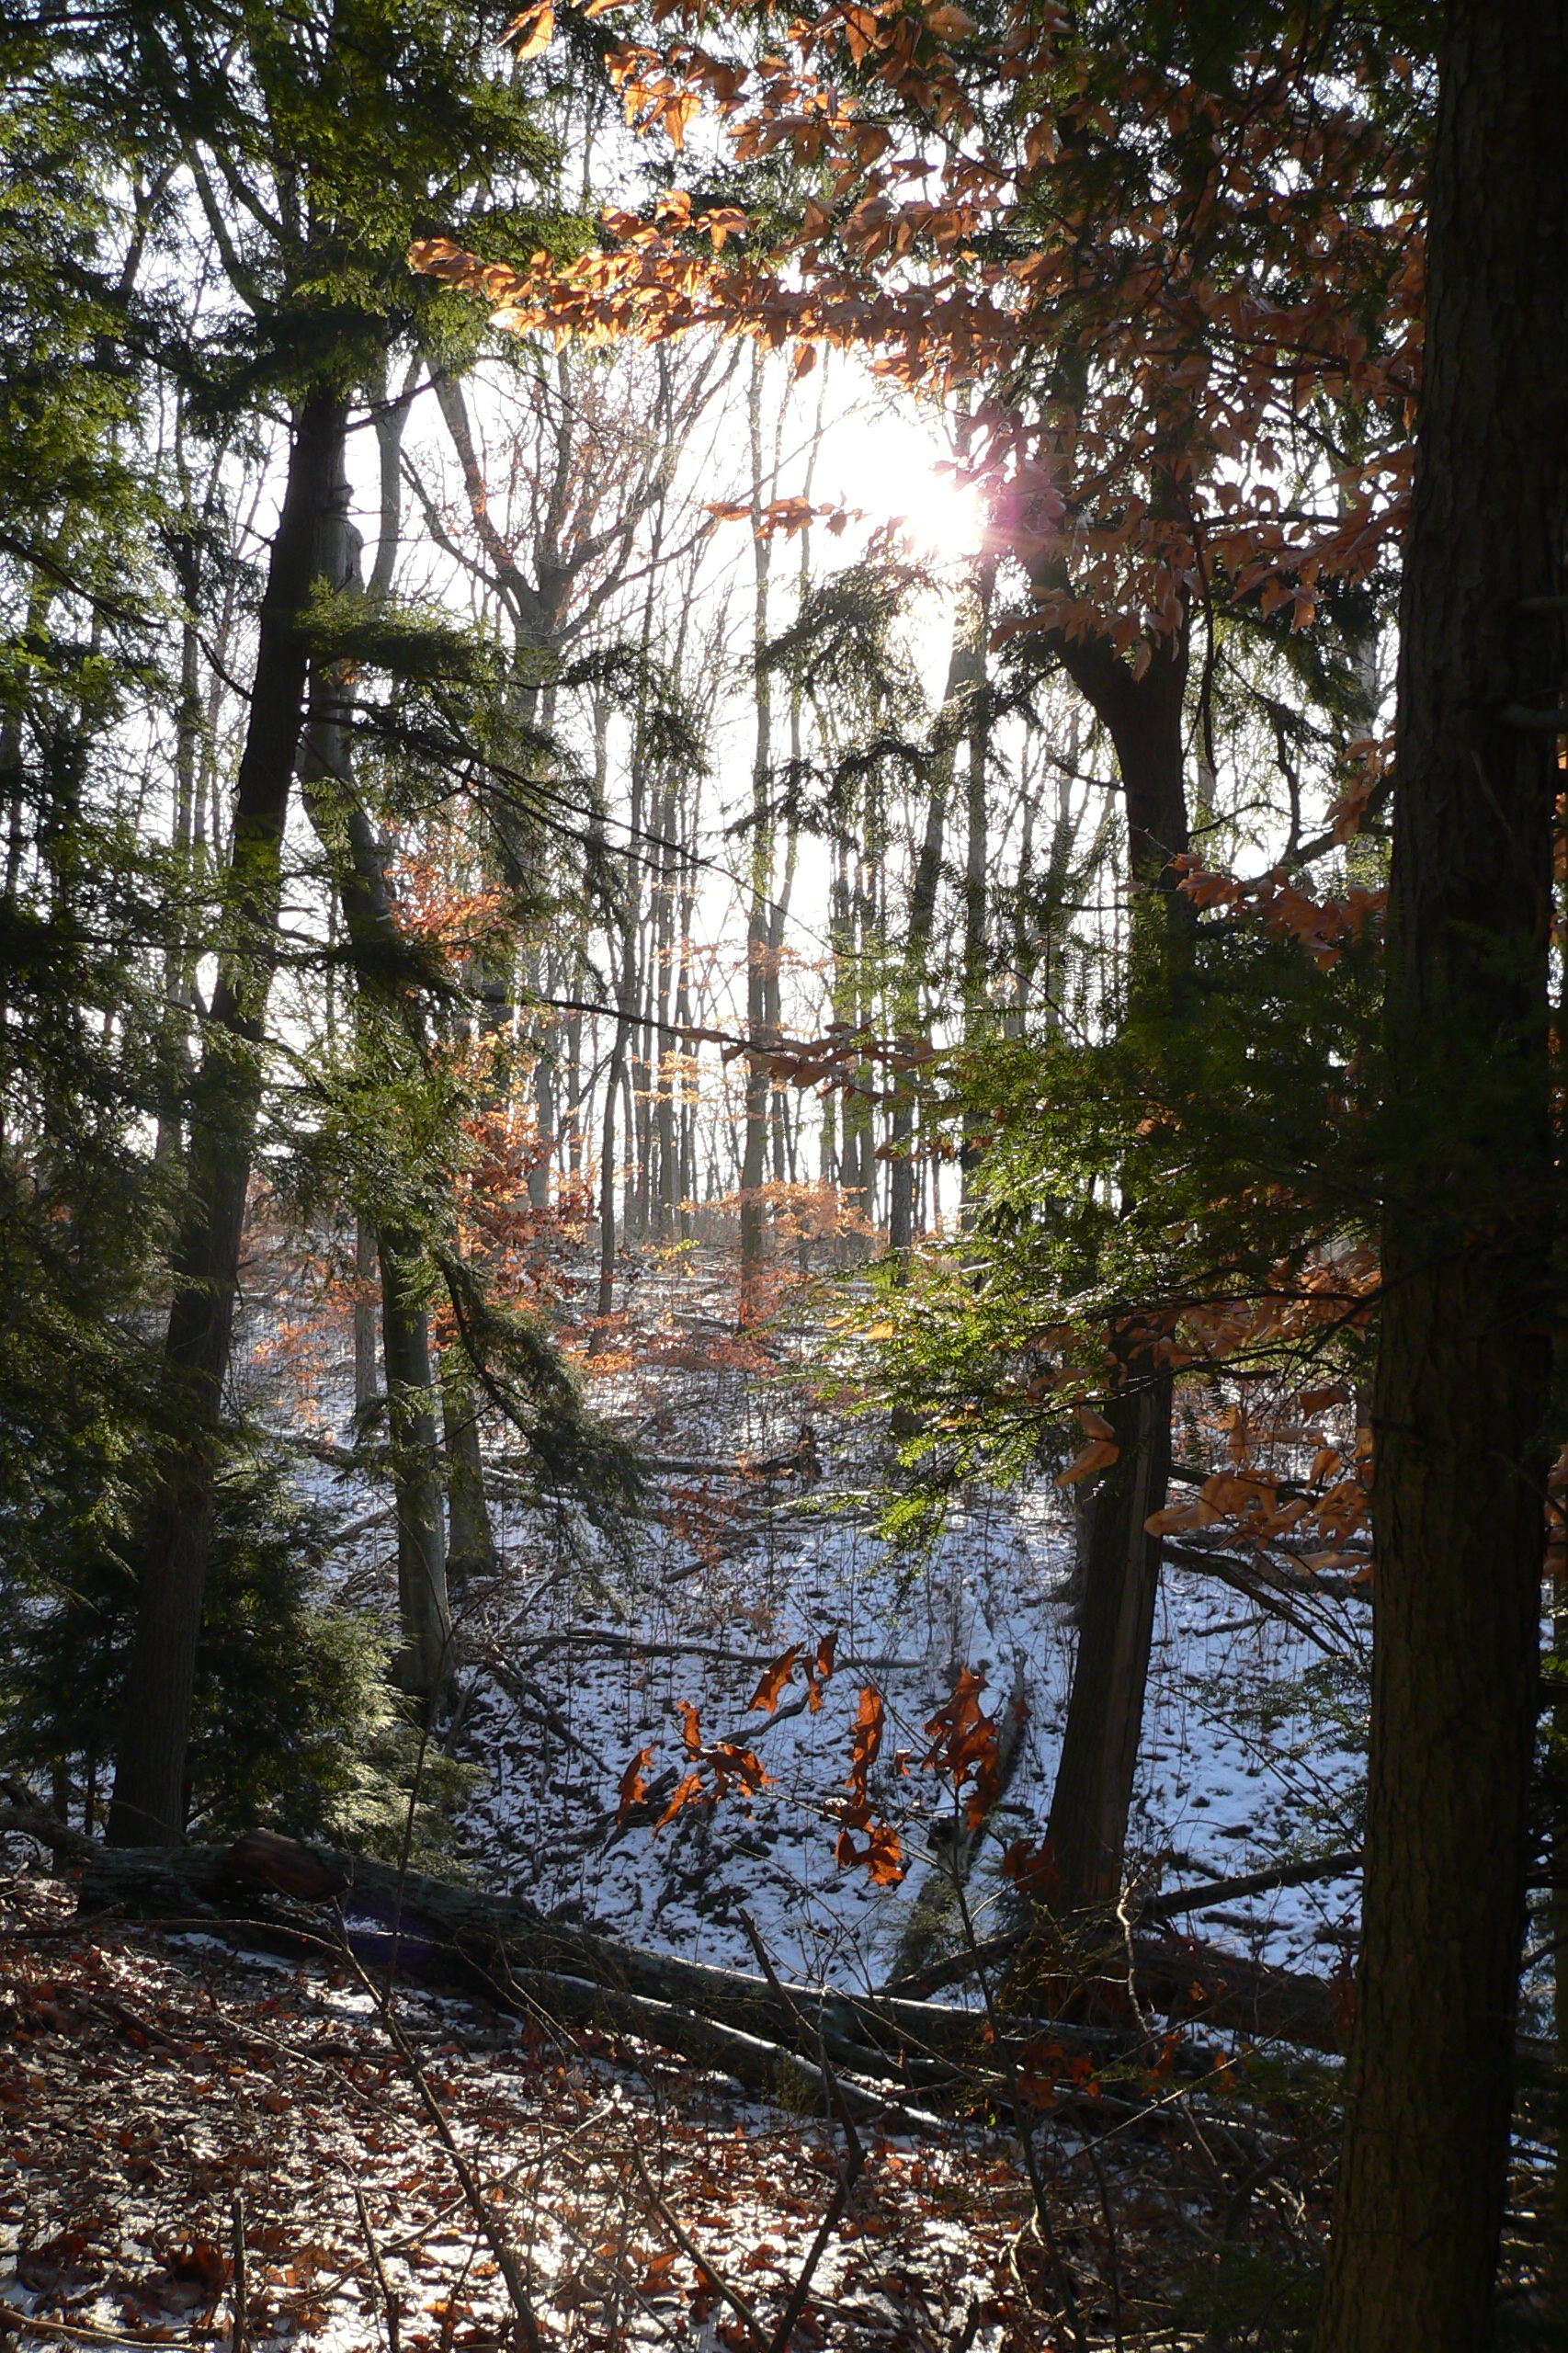 beech+leaves+with+hemlocks+and+winter+sun+at+Back+Creek+photo+credit+John+Lawrence.jpg